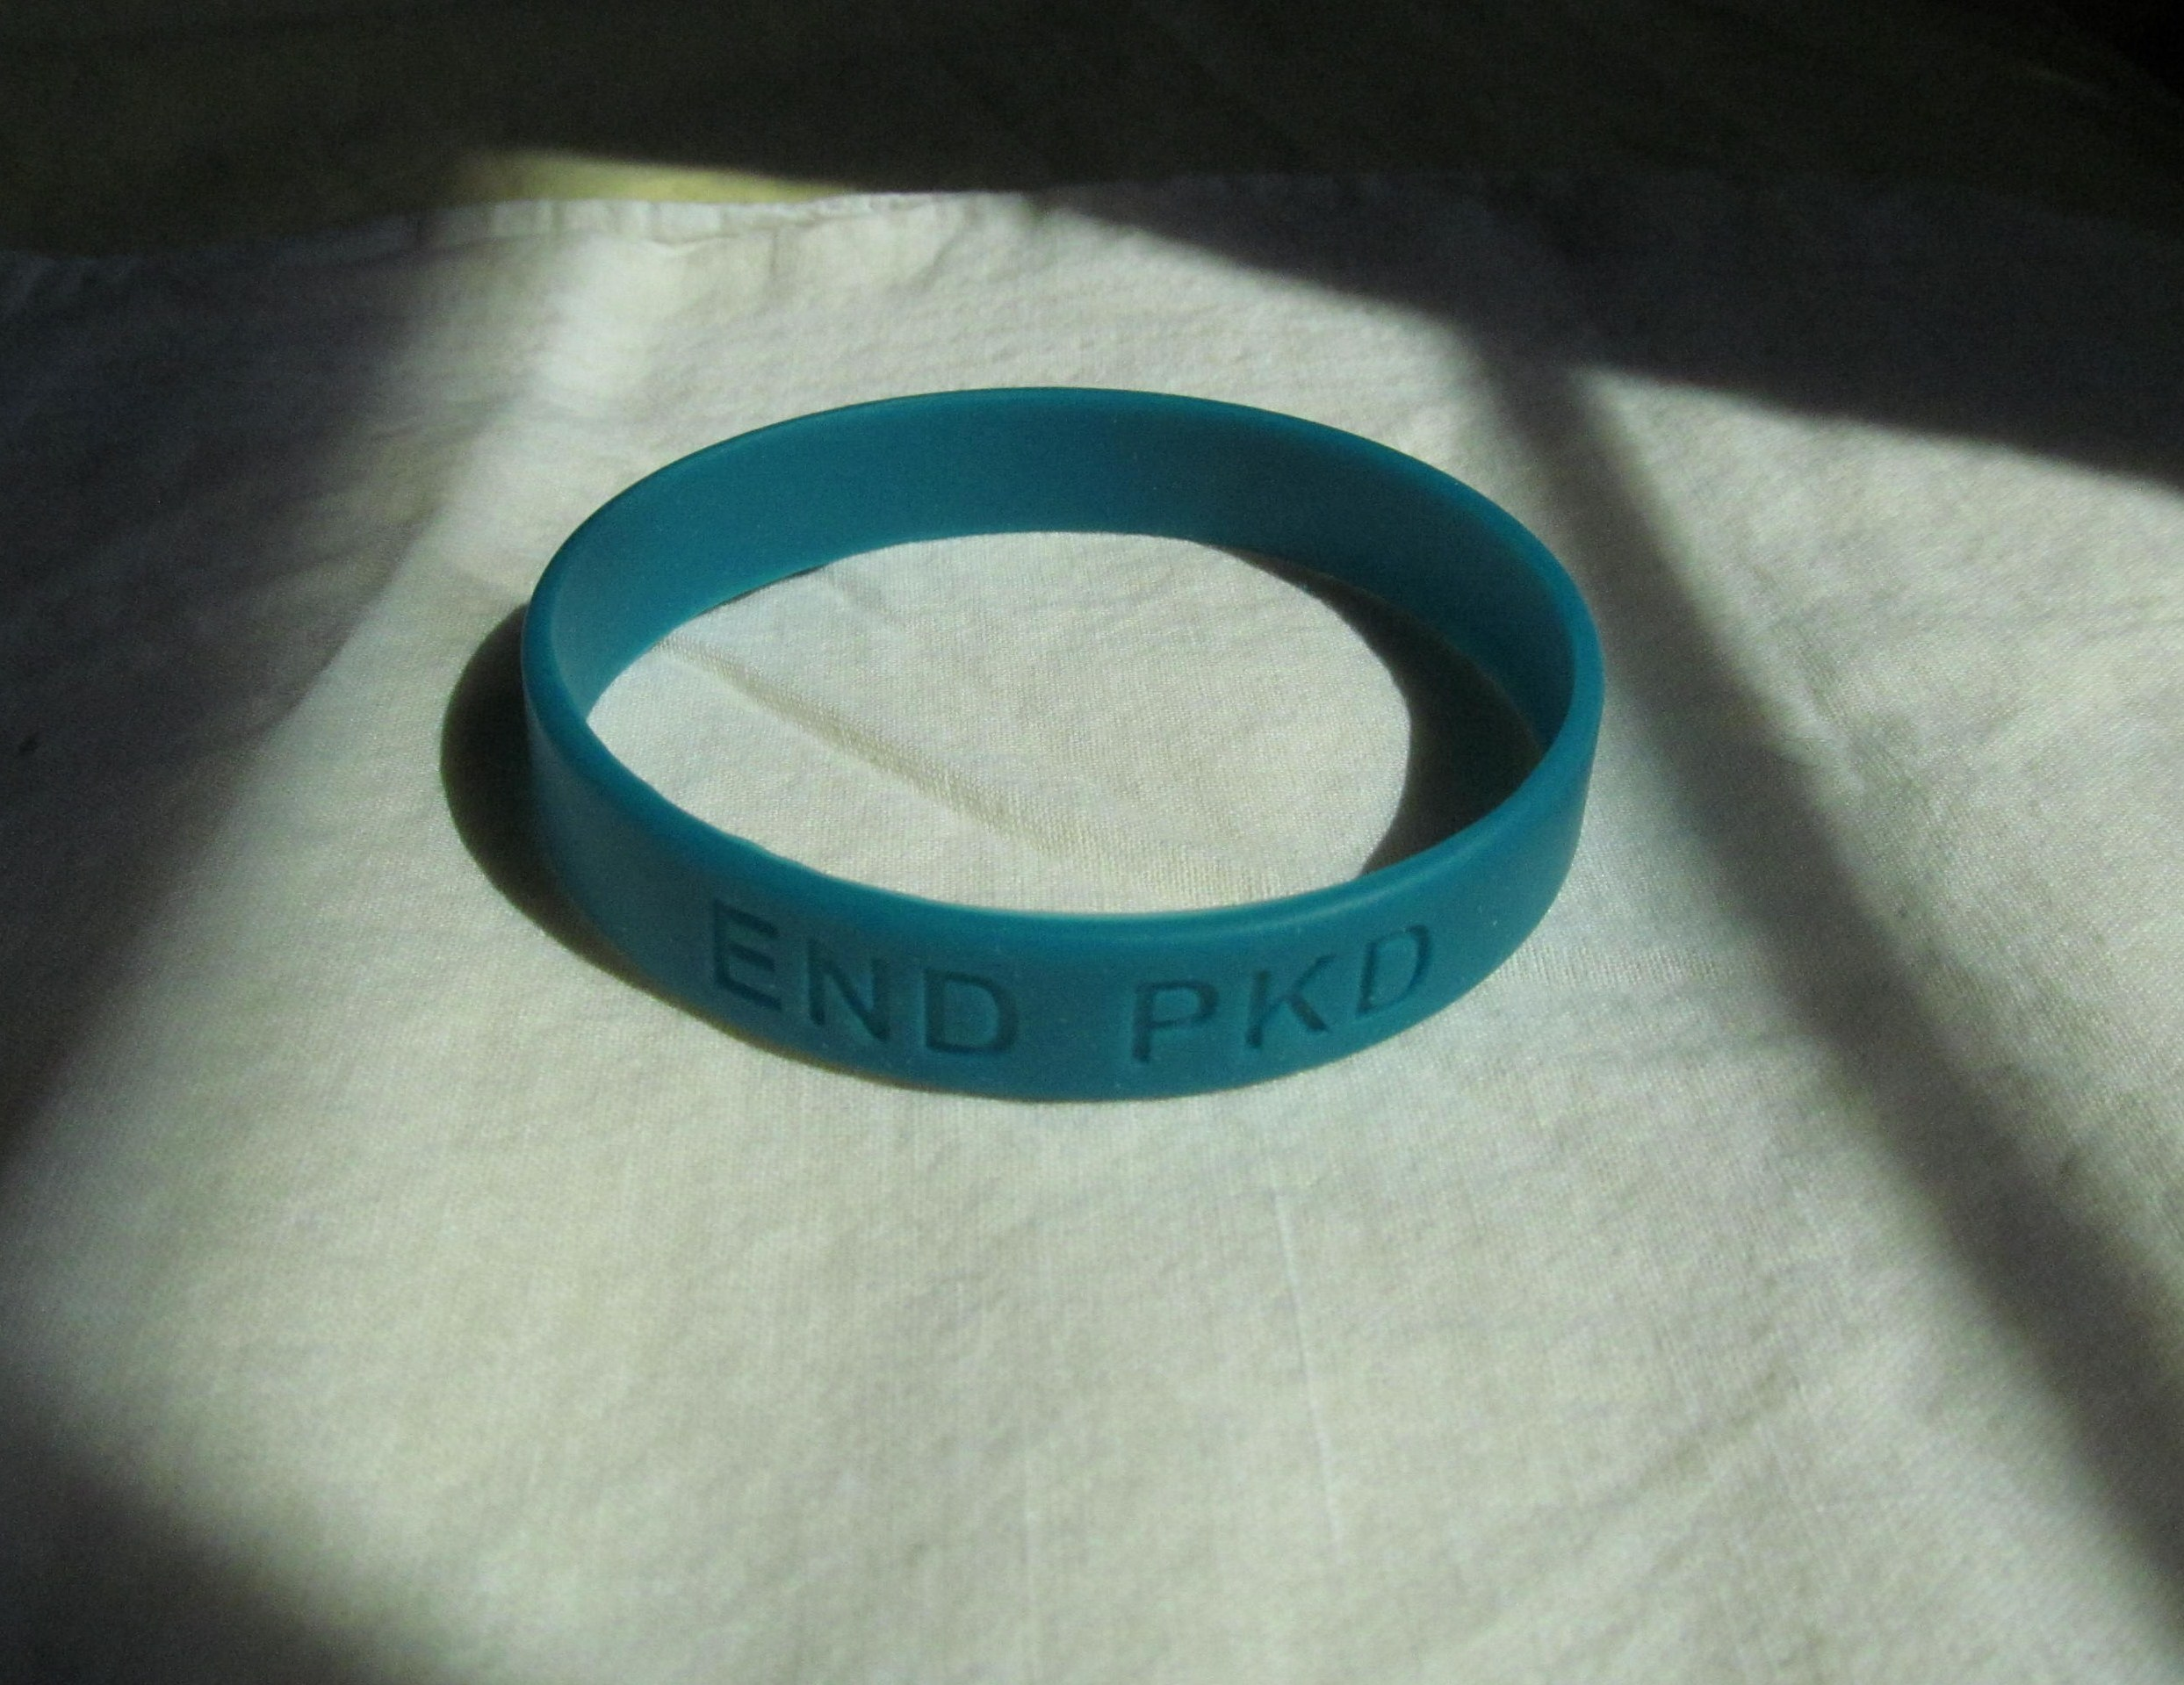 awareness danlos ehlers eds bracelet pin syndrome